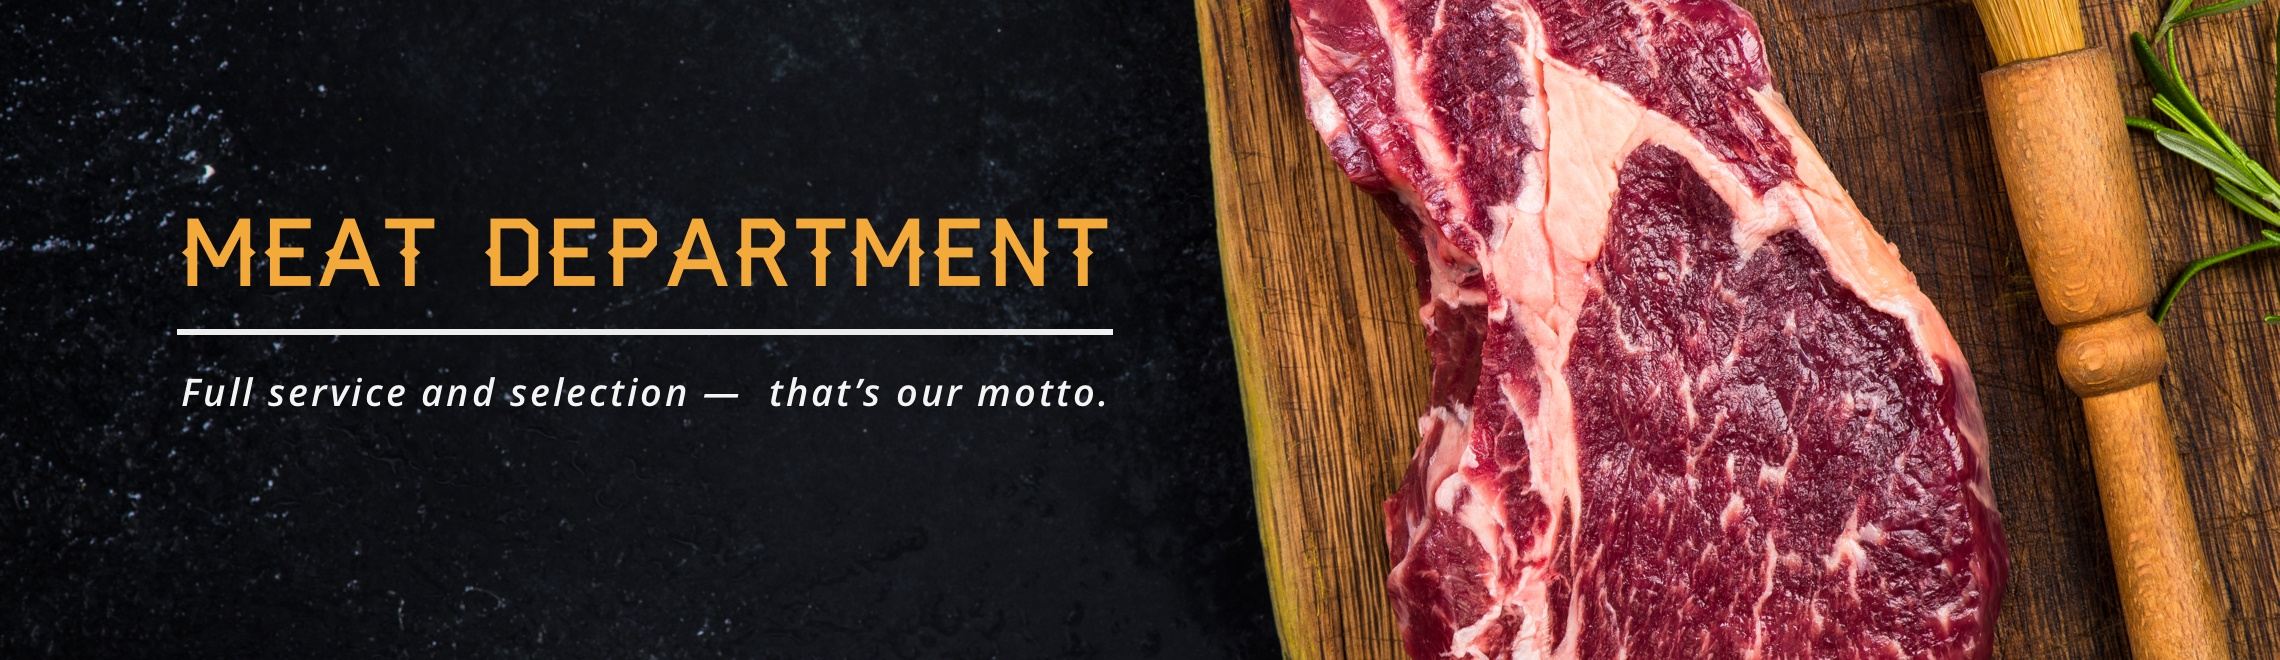 Meat Department  - Full service and selection - that's our motto.